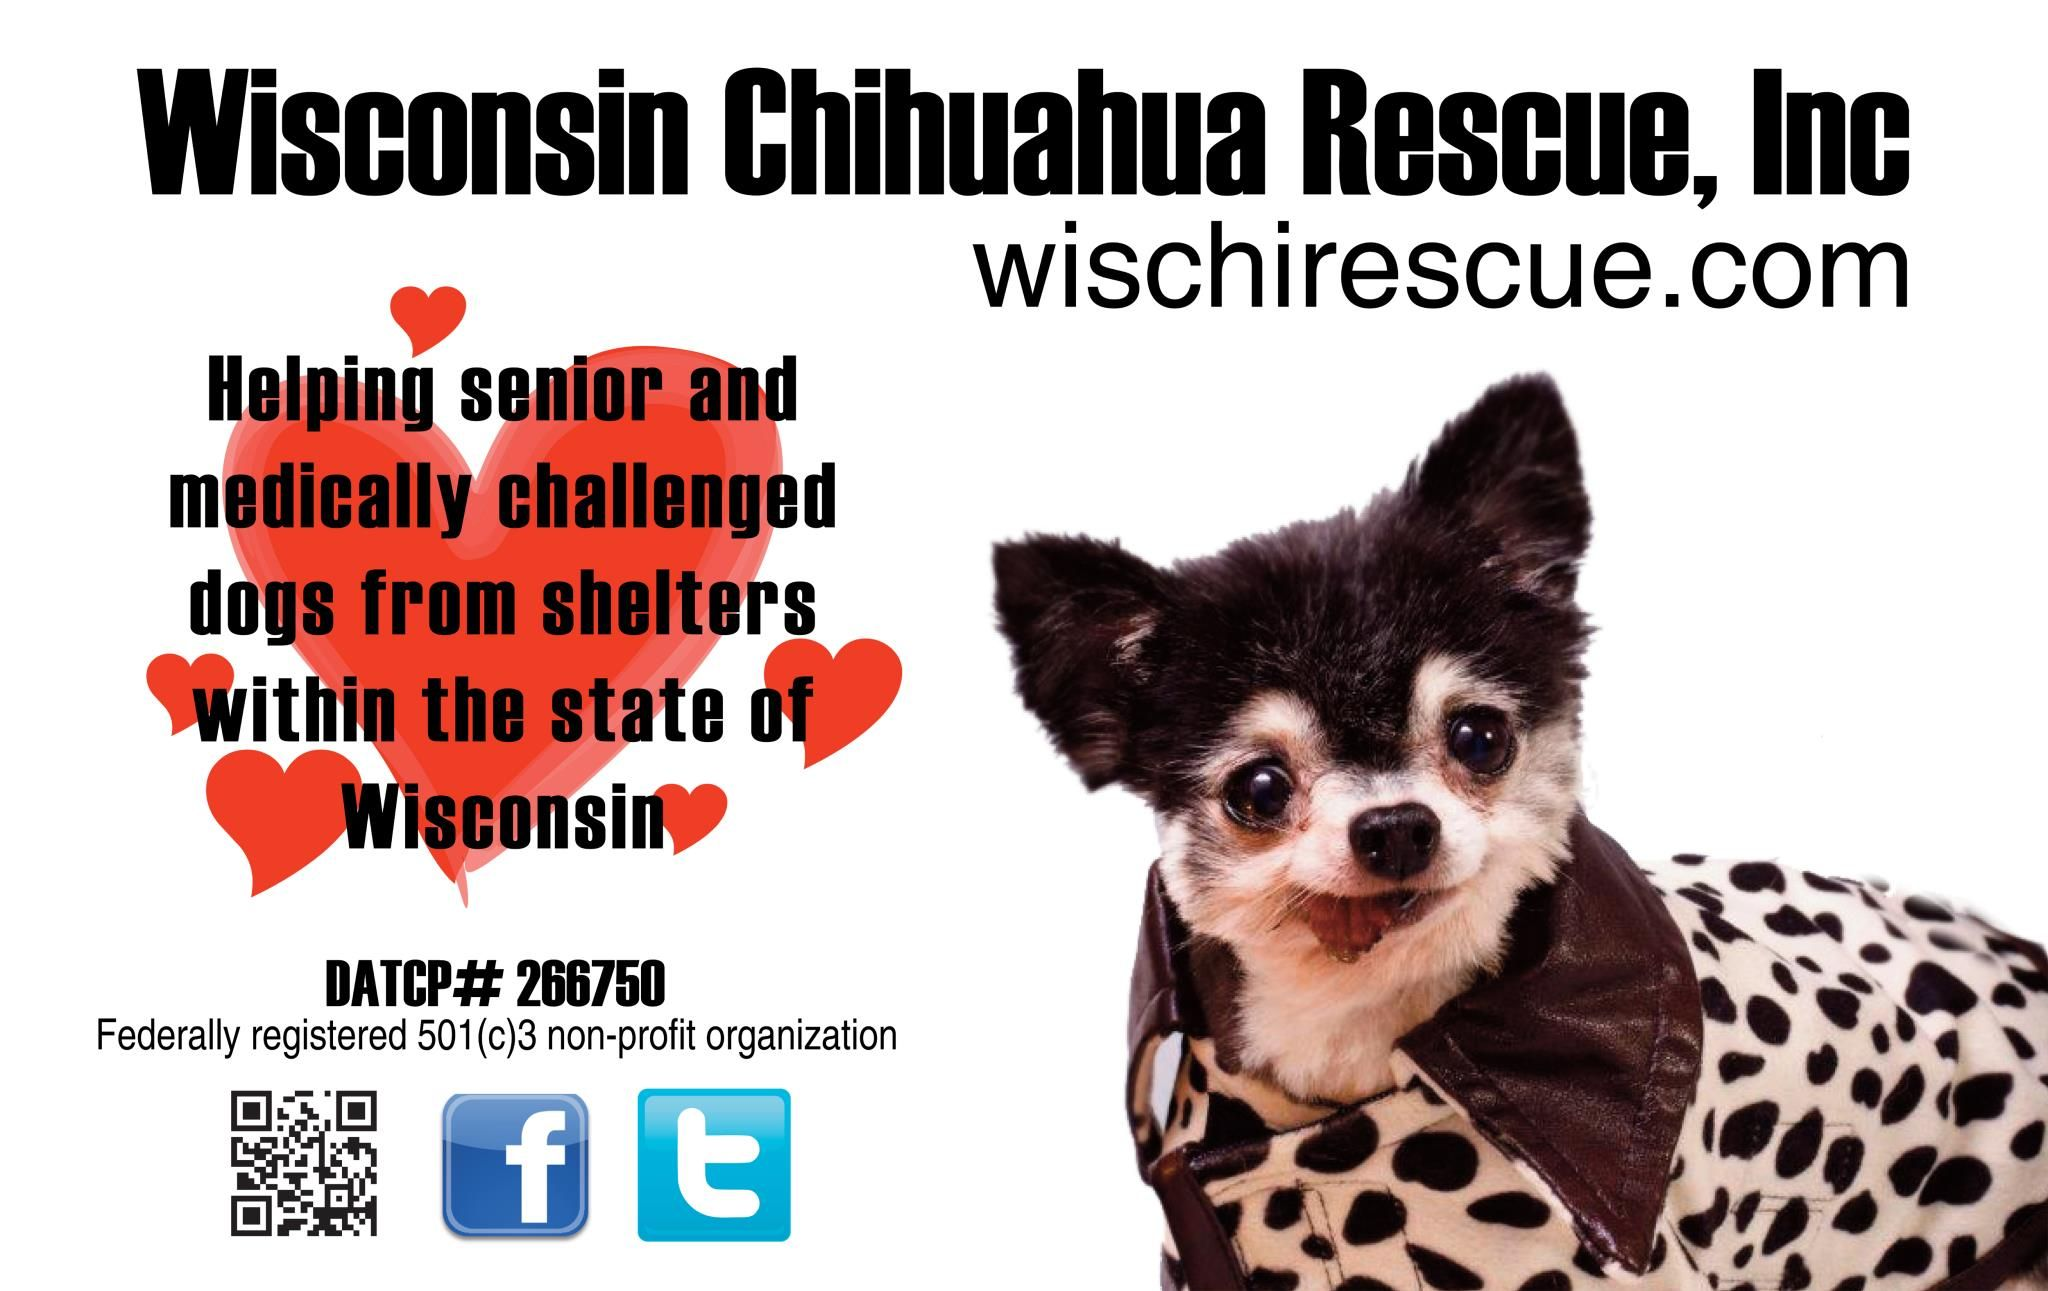 chihuahua rescue wisconsin wisconsin chihuahua rescue chihuahuas pinterest 5970